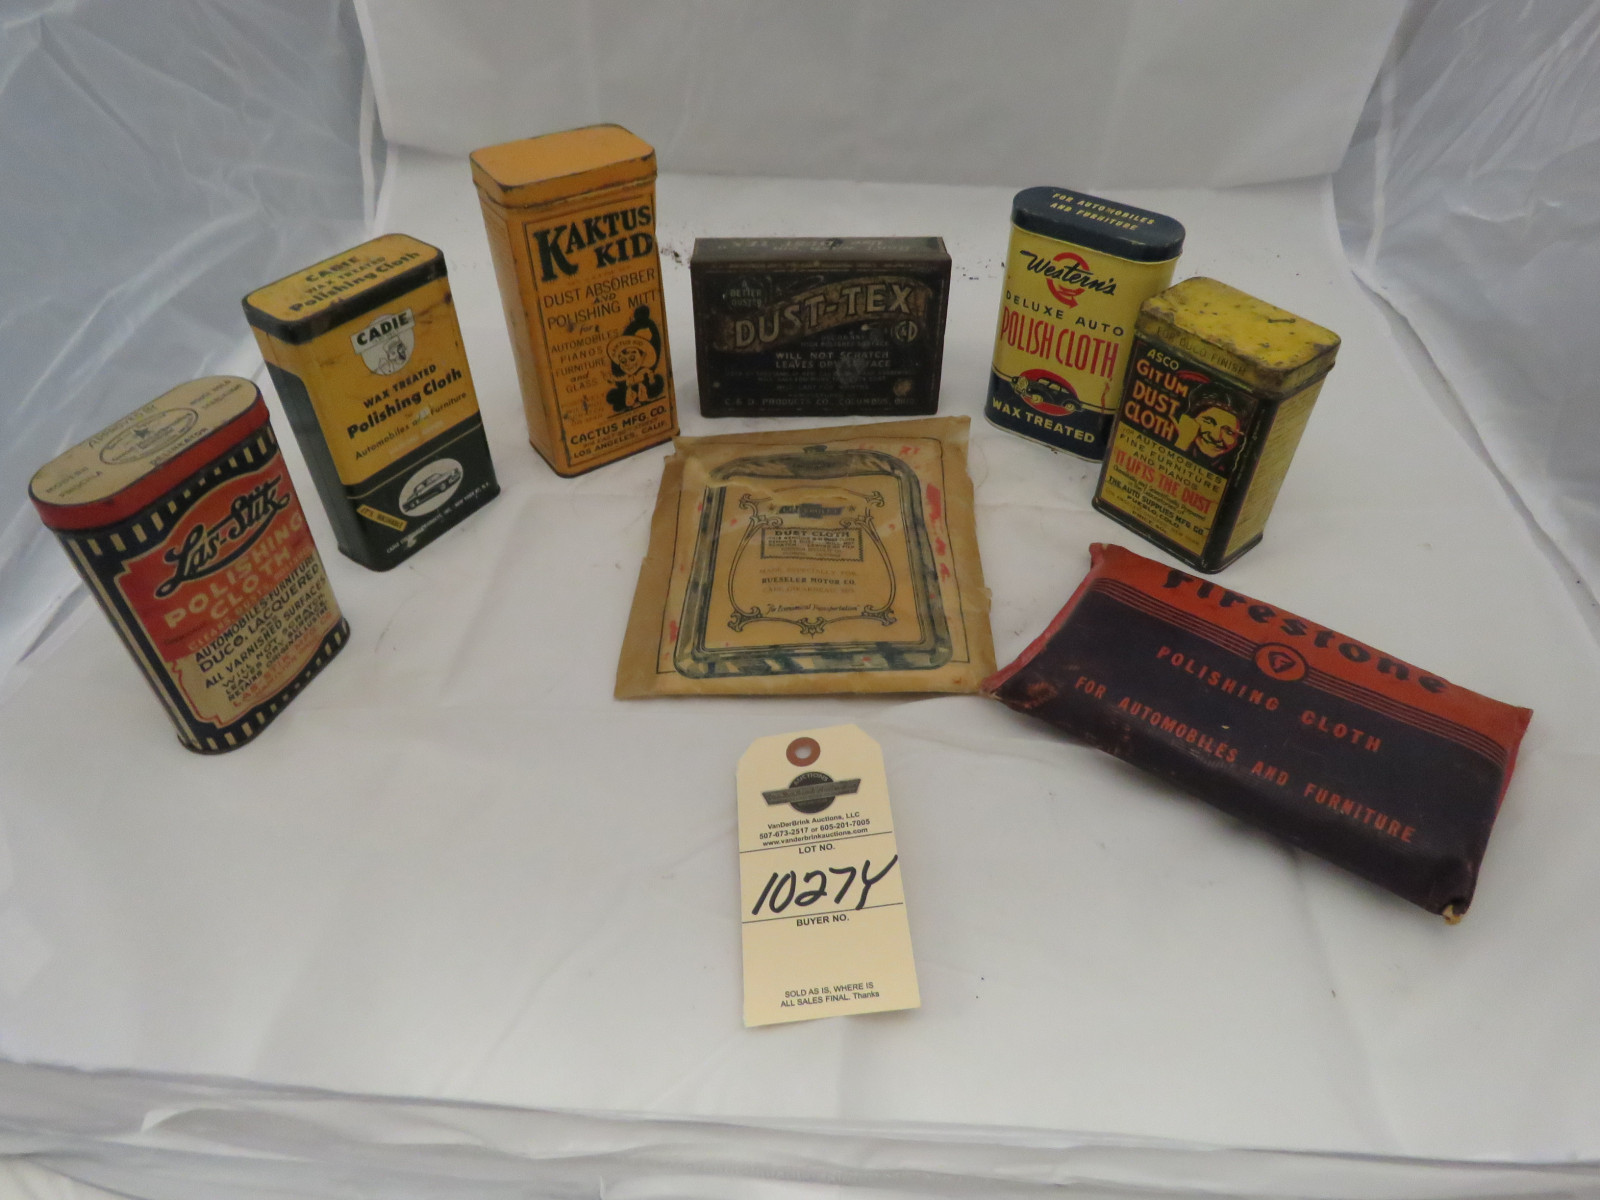 Vintage Dusting Cloths with Advertising - Image 1